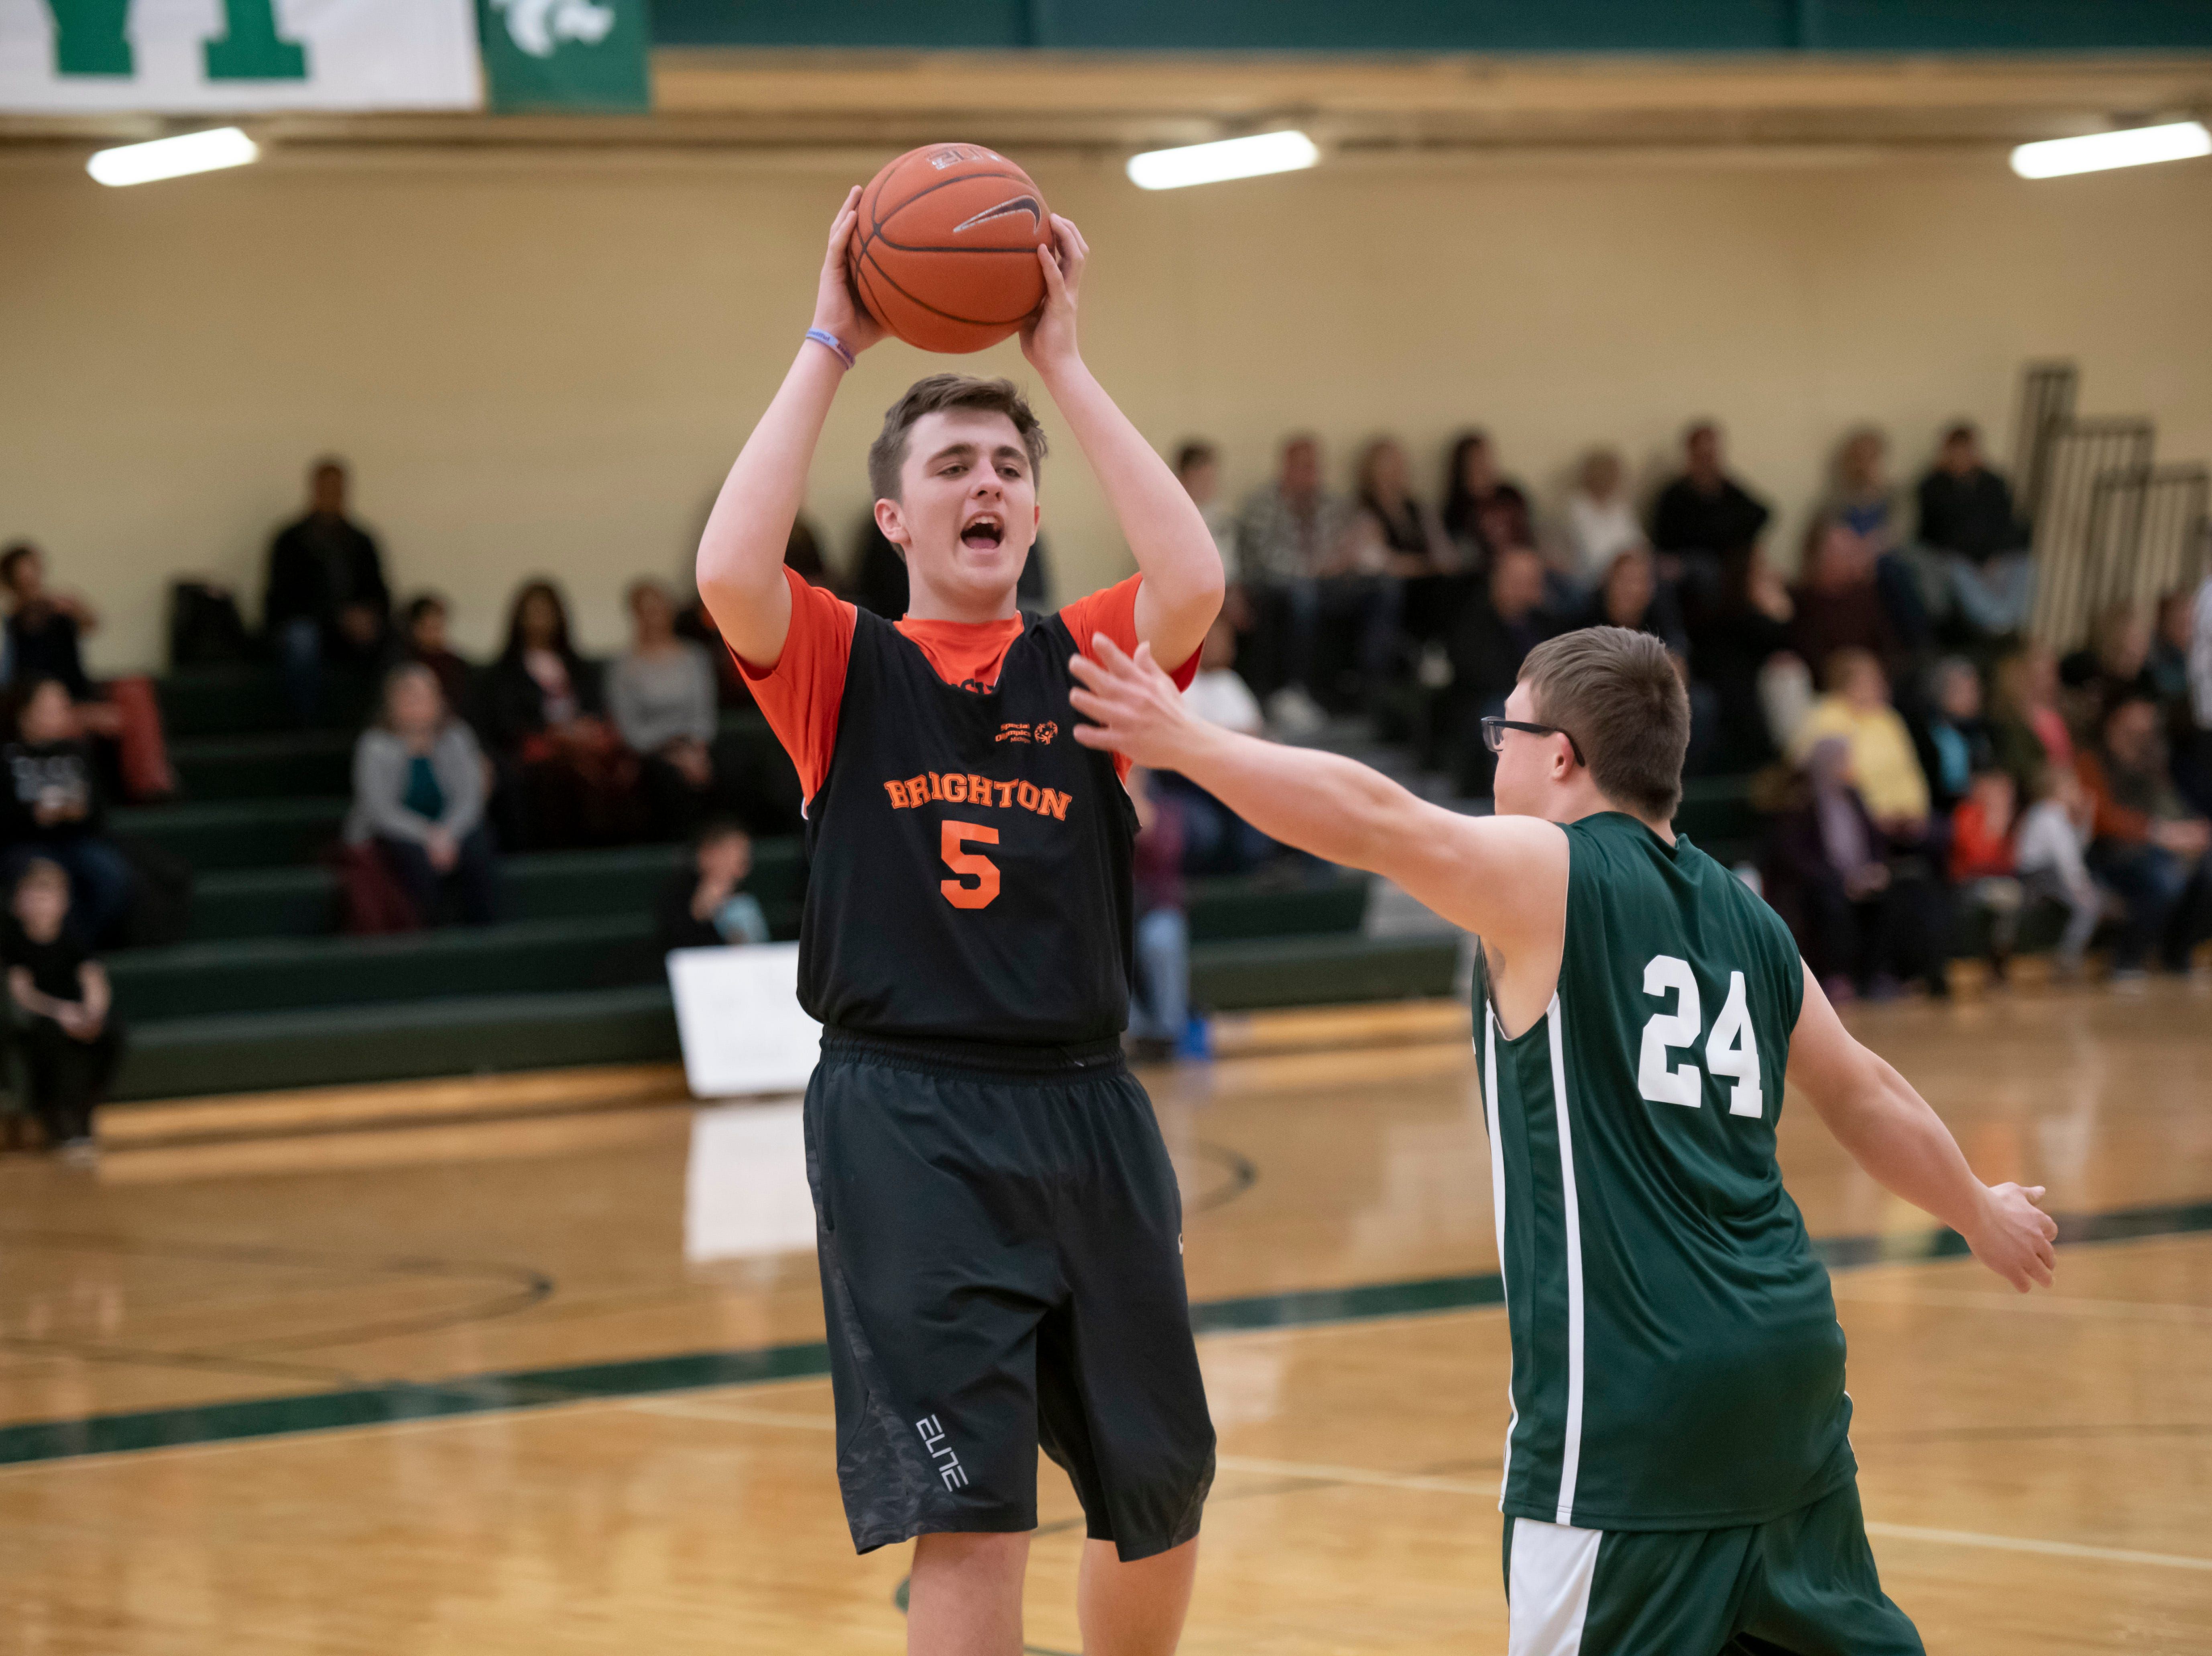 Brighton's Evan Potter looks for an open man while being defended by Novi's Robby Heil.